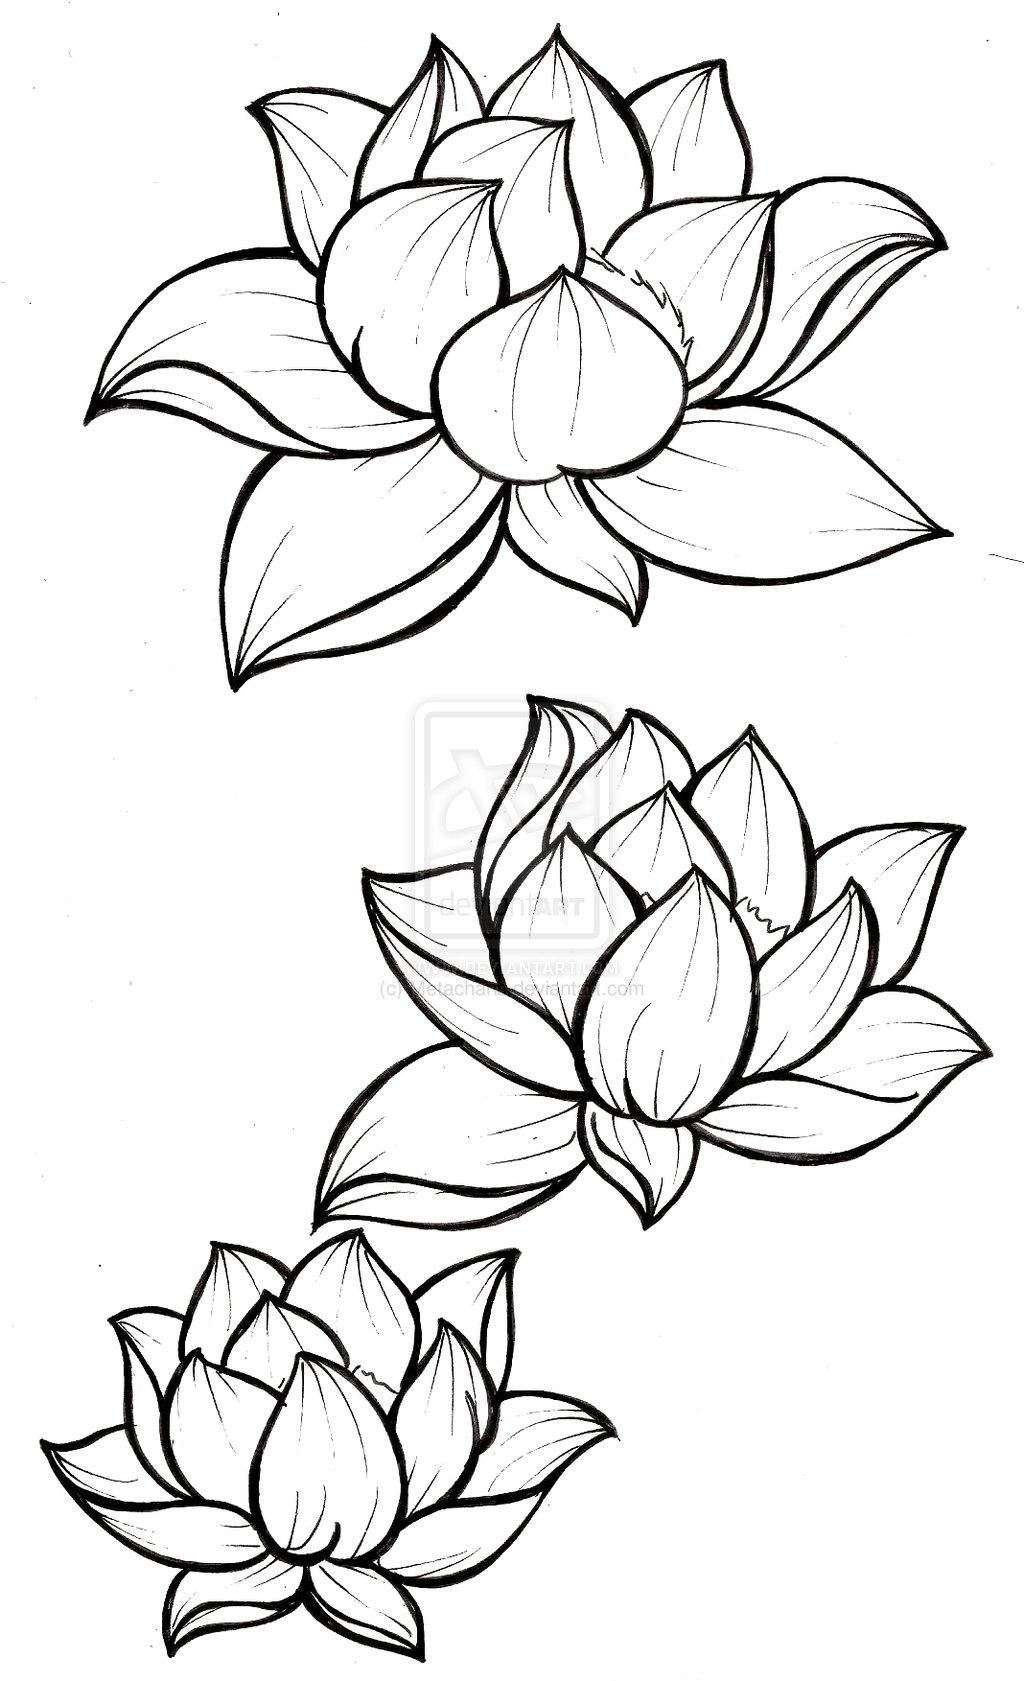 Japanese Lotus Drawing At Getdrawings Free For Personal Use